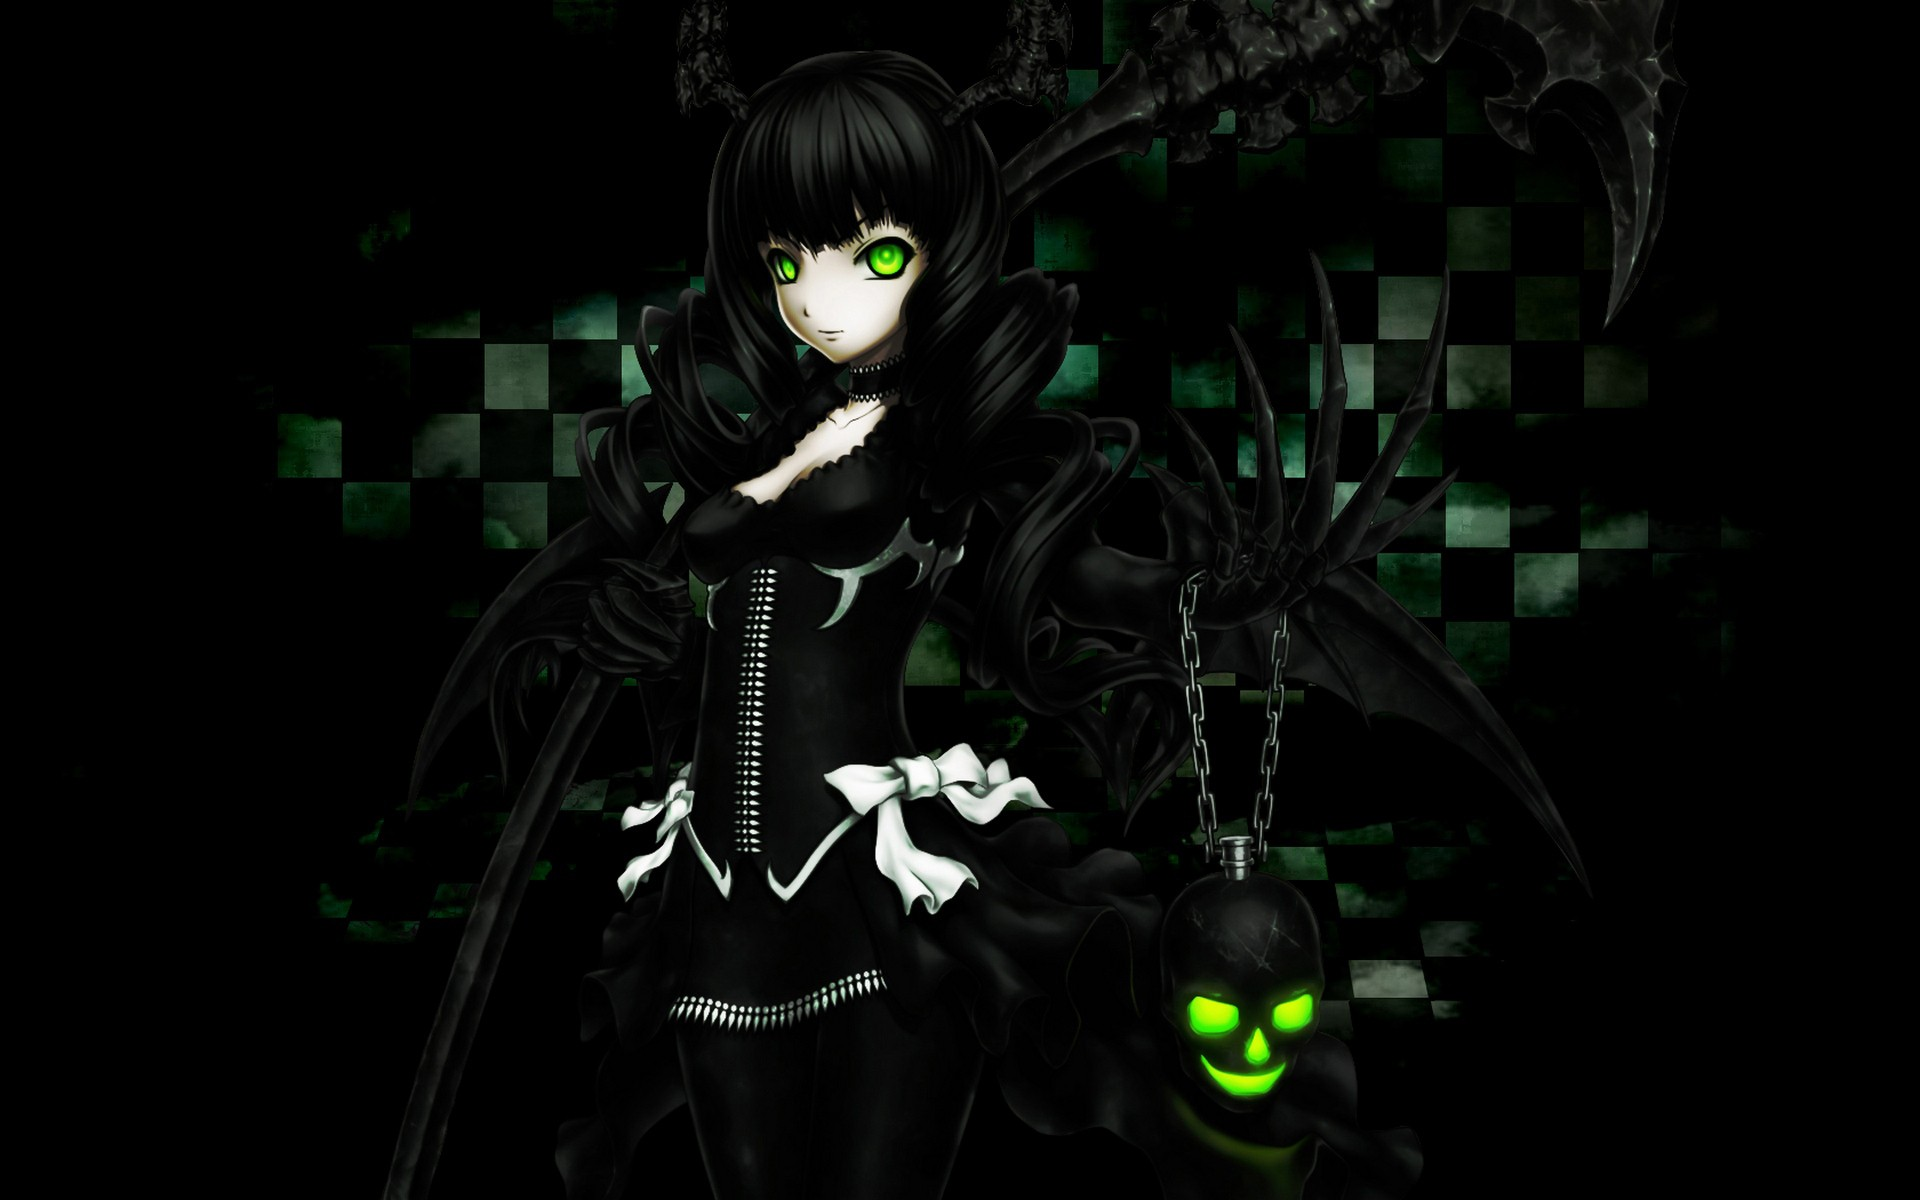 imagesci.com/dark-anime-girl-wallpaper-7871-hd-wallpapers.html